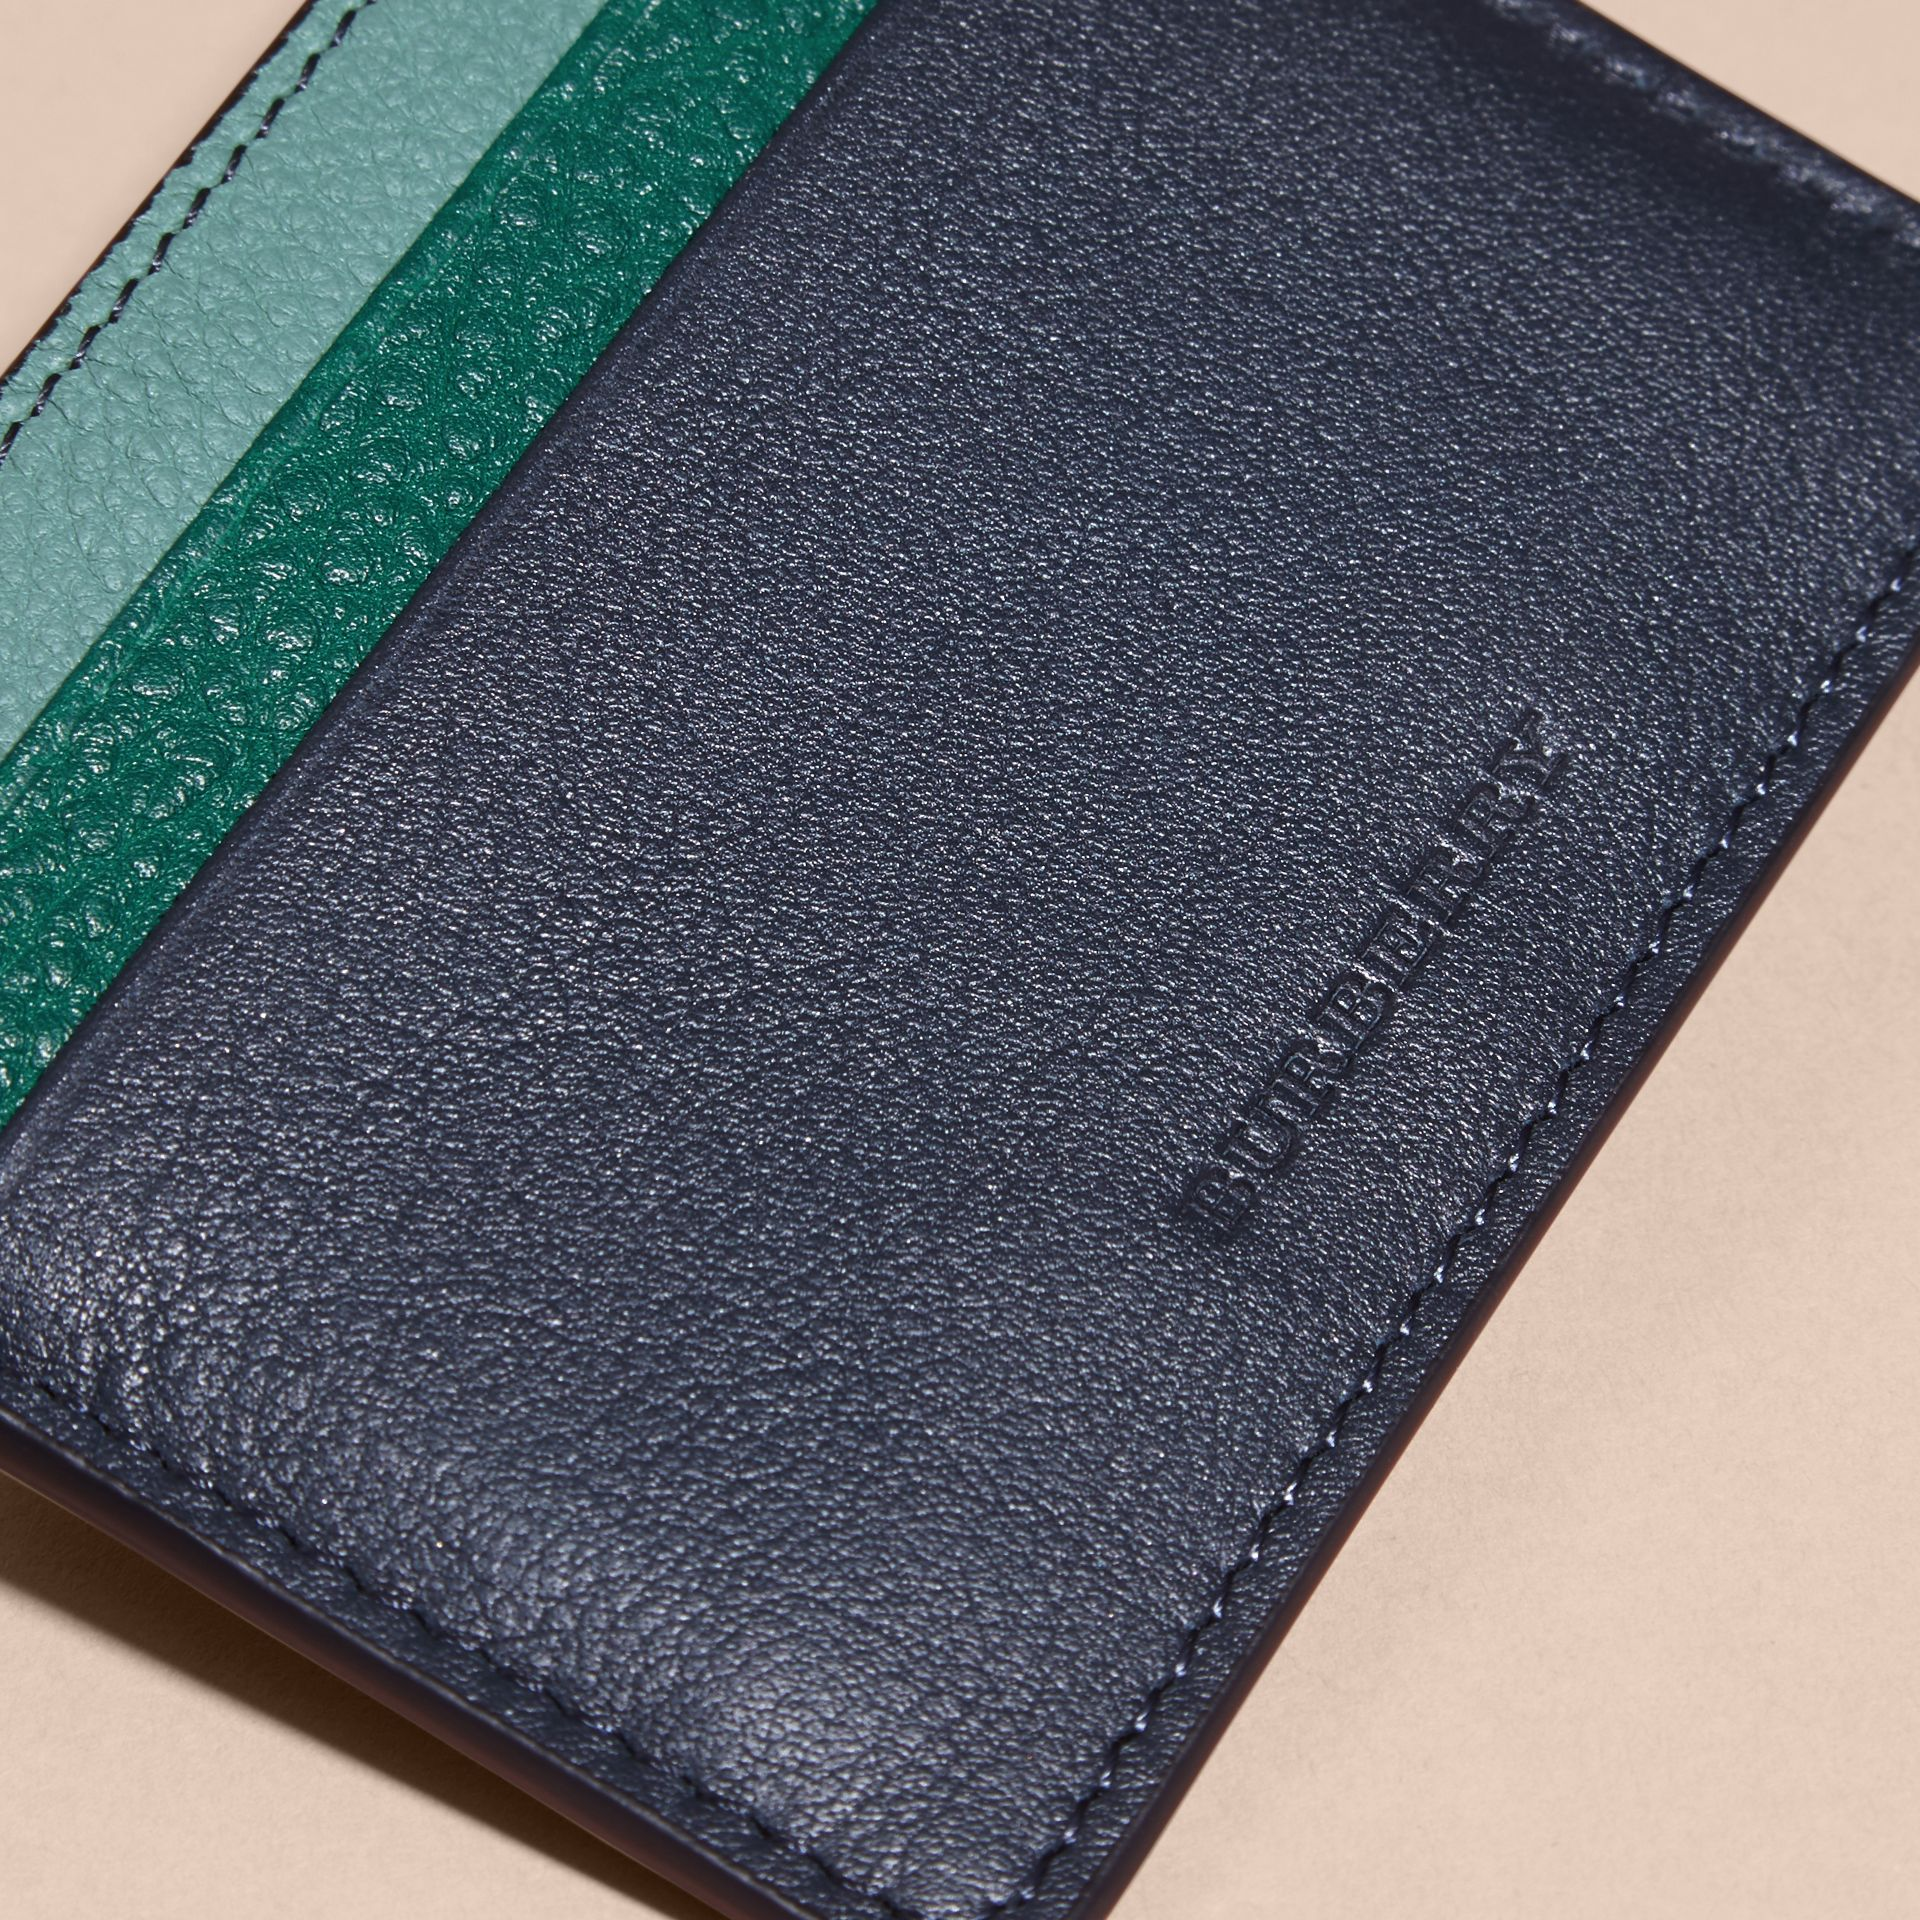 Colour Block Leather Card Case in Blue Carbon - gallery image 2